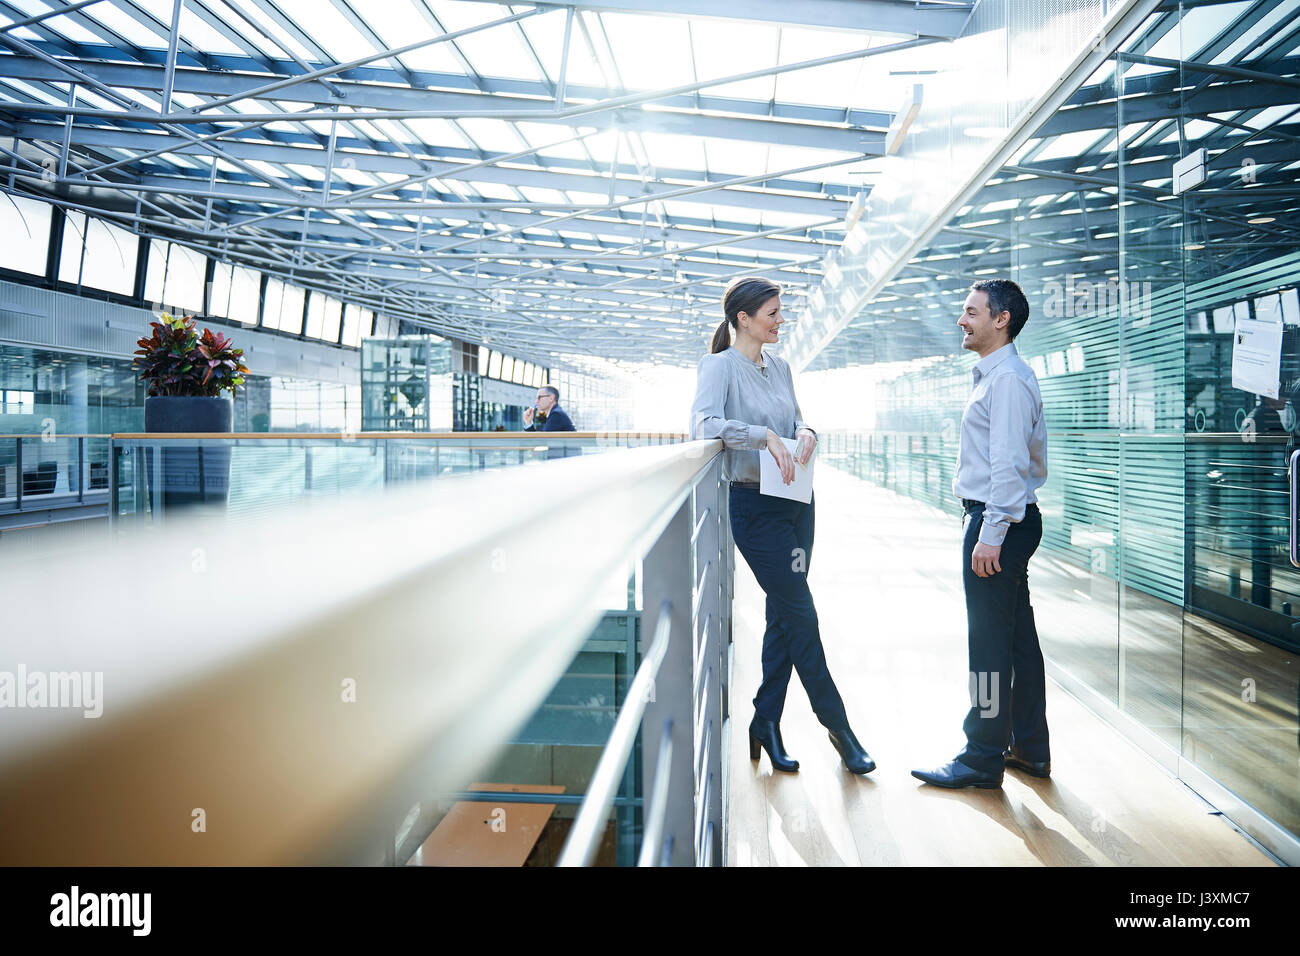 Businessman and Woman talking on office balcon Photo Stock